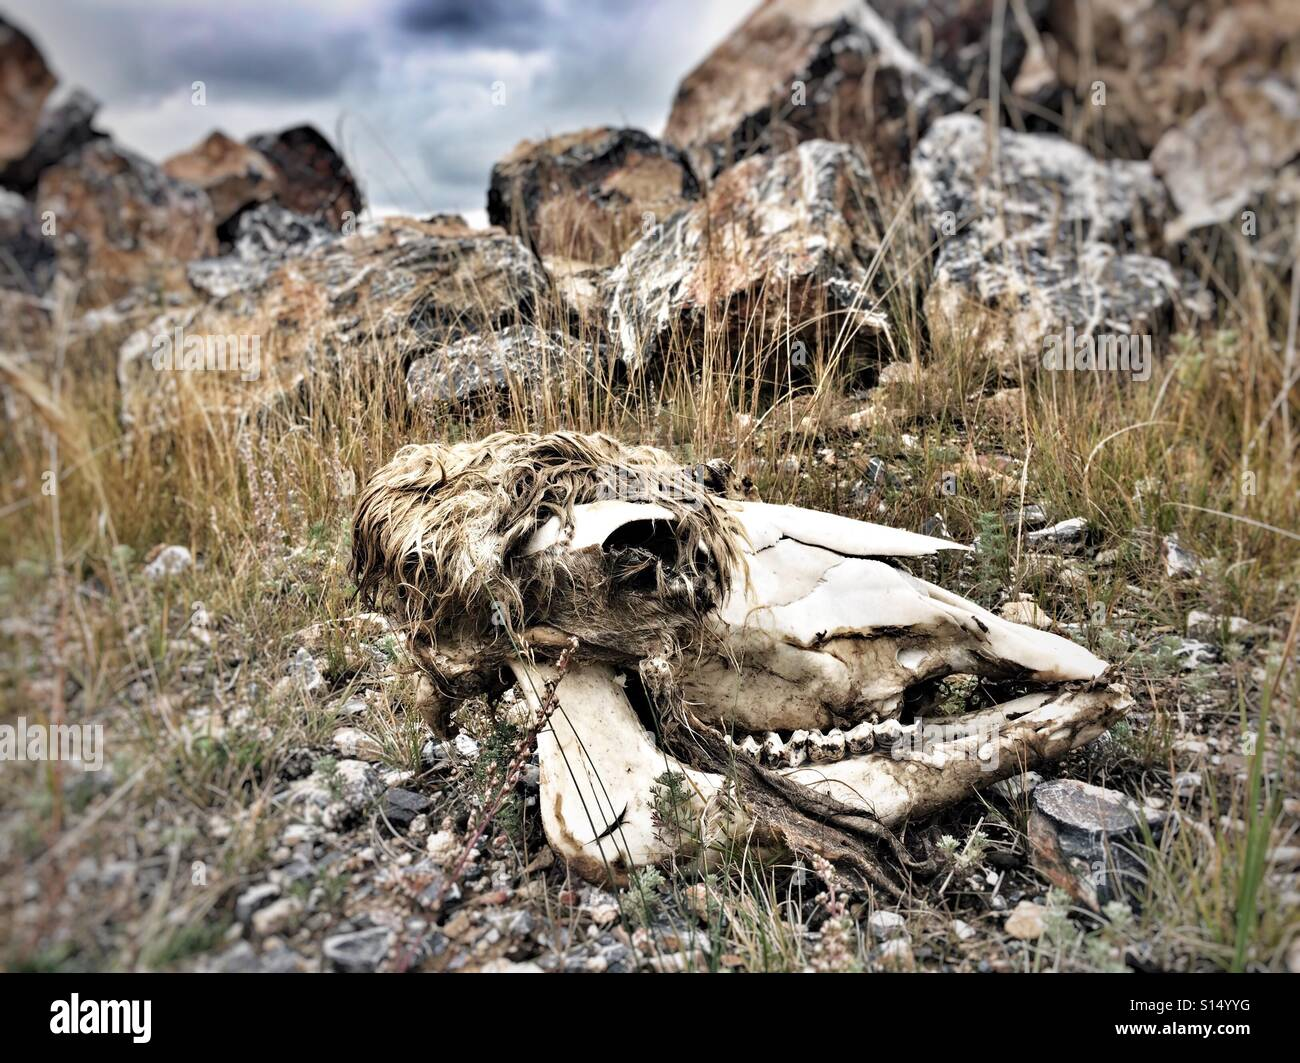 Death in the grassland - Stock Image